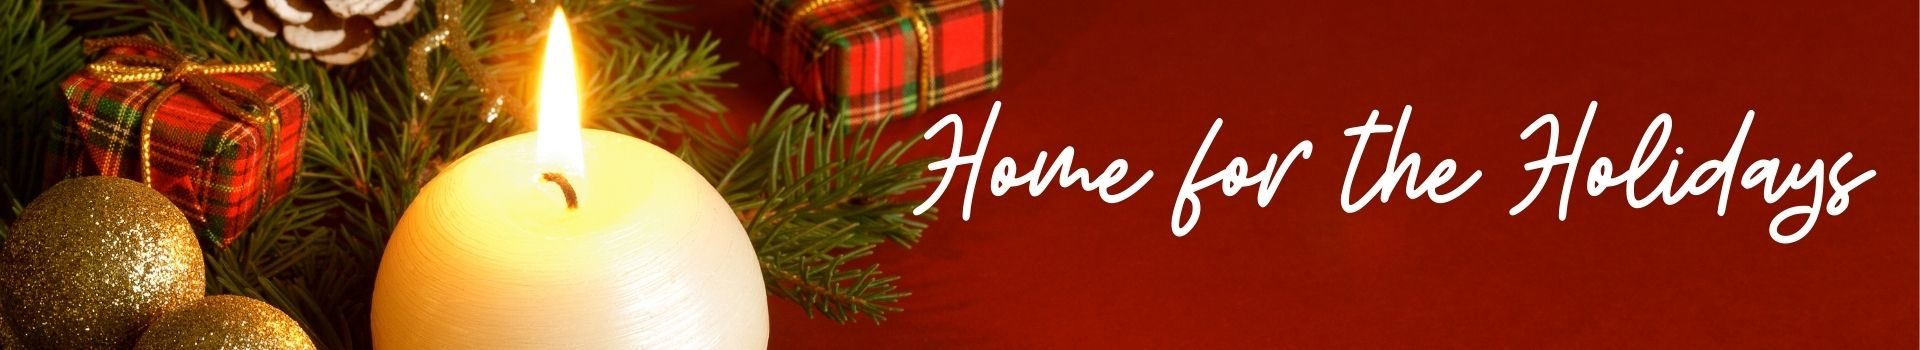 Home for the holidays - holiday shipping deadlines